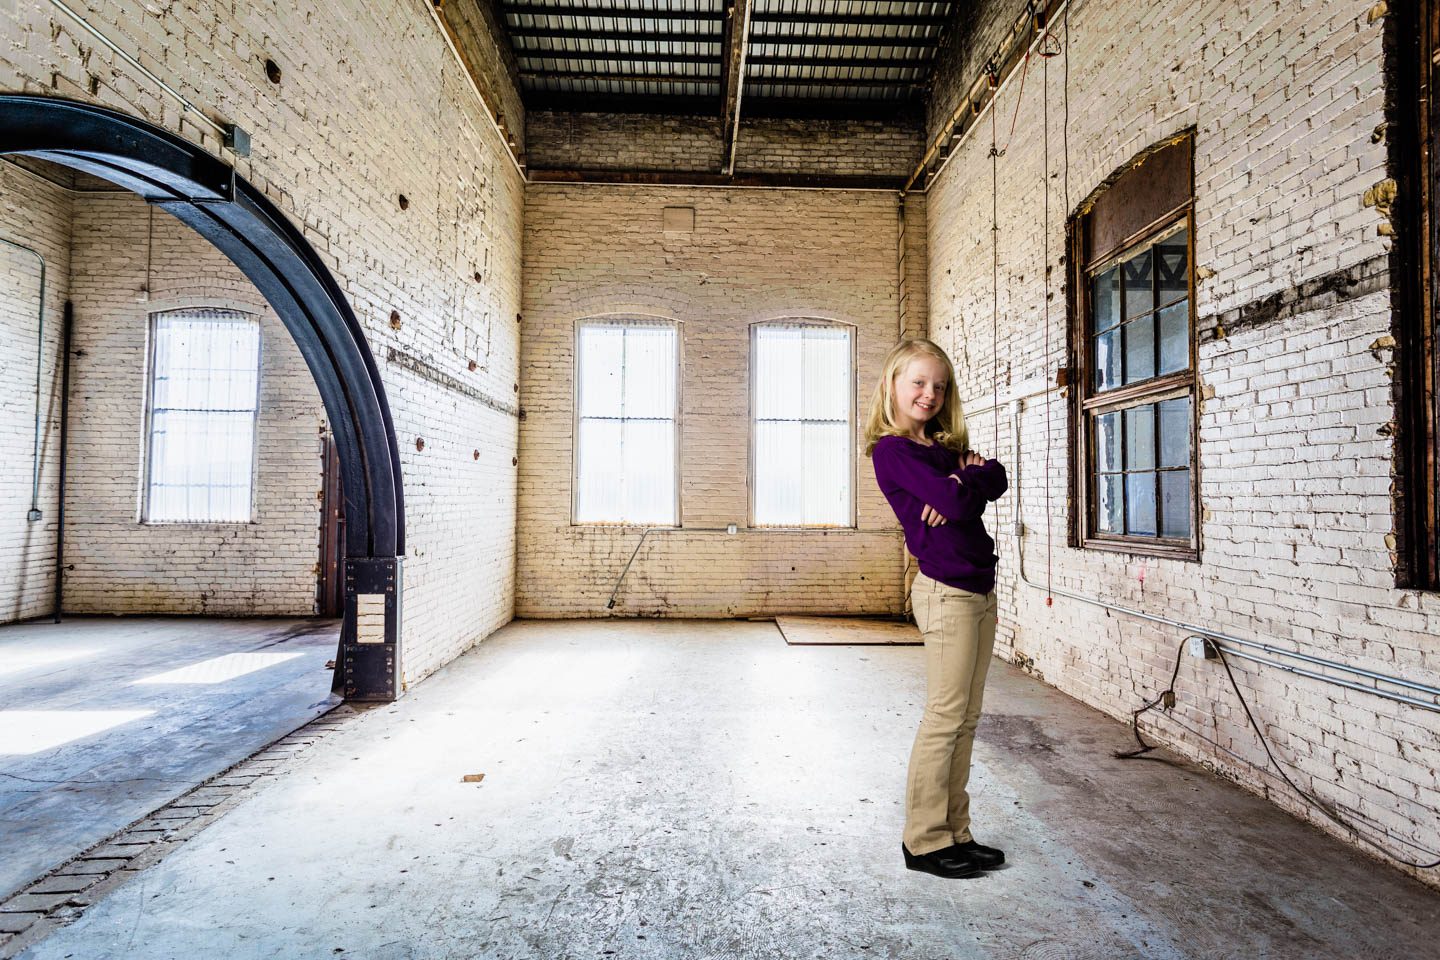 Just to practice adding feet to a photo we have Julianne in a warehouse